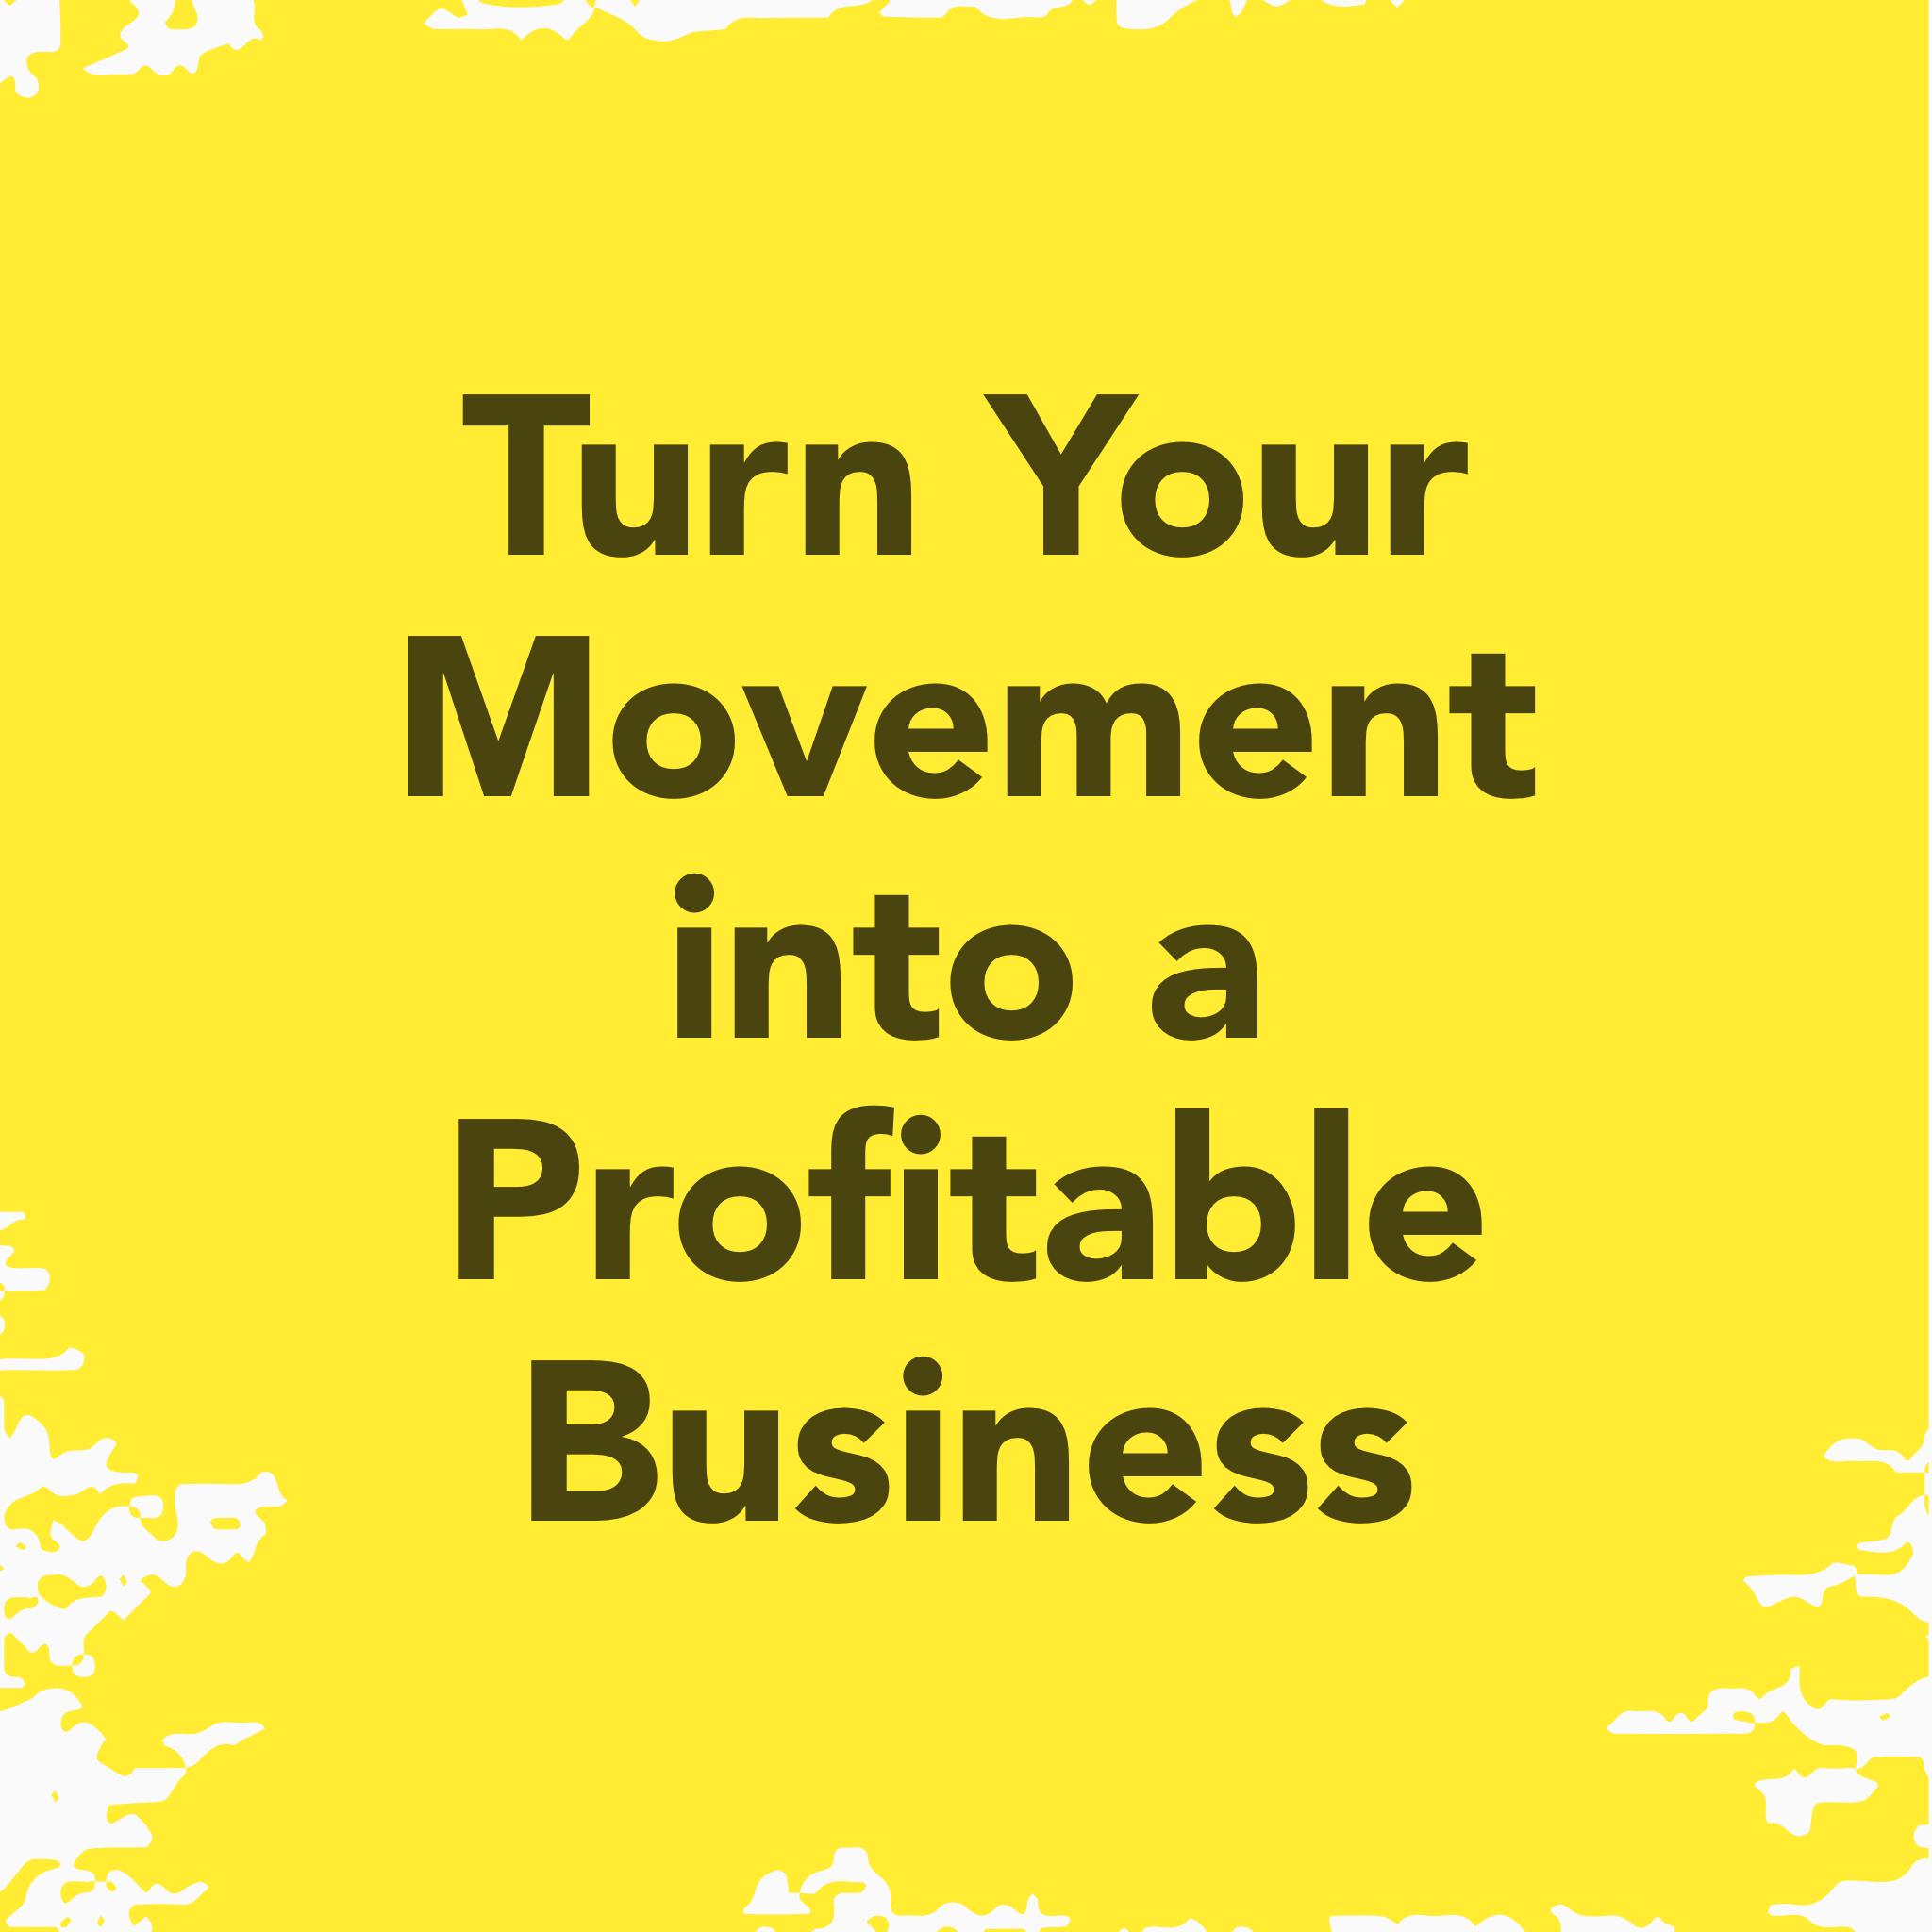 Turn your movement into a profitable business